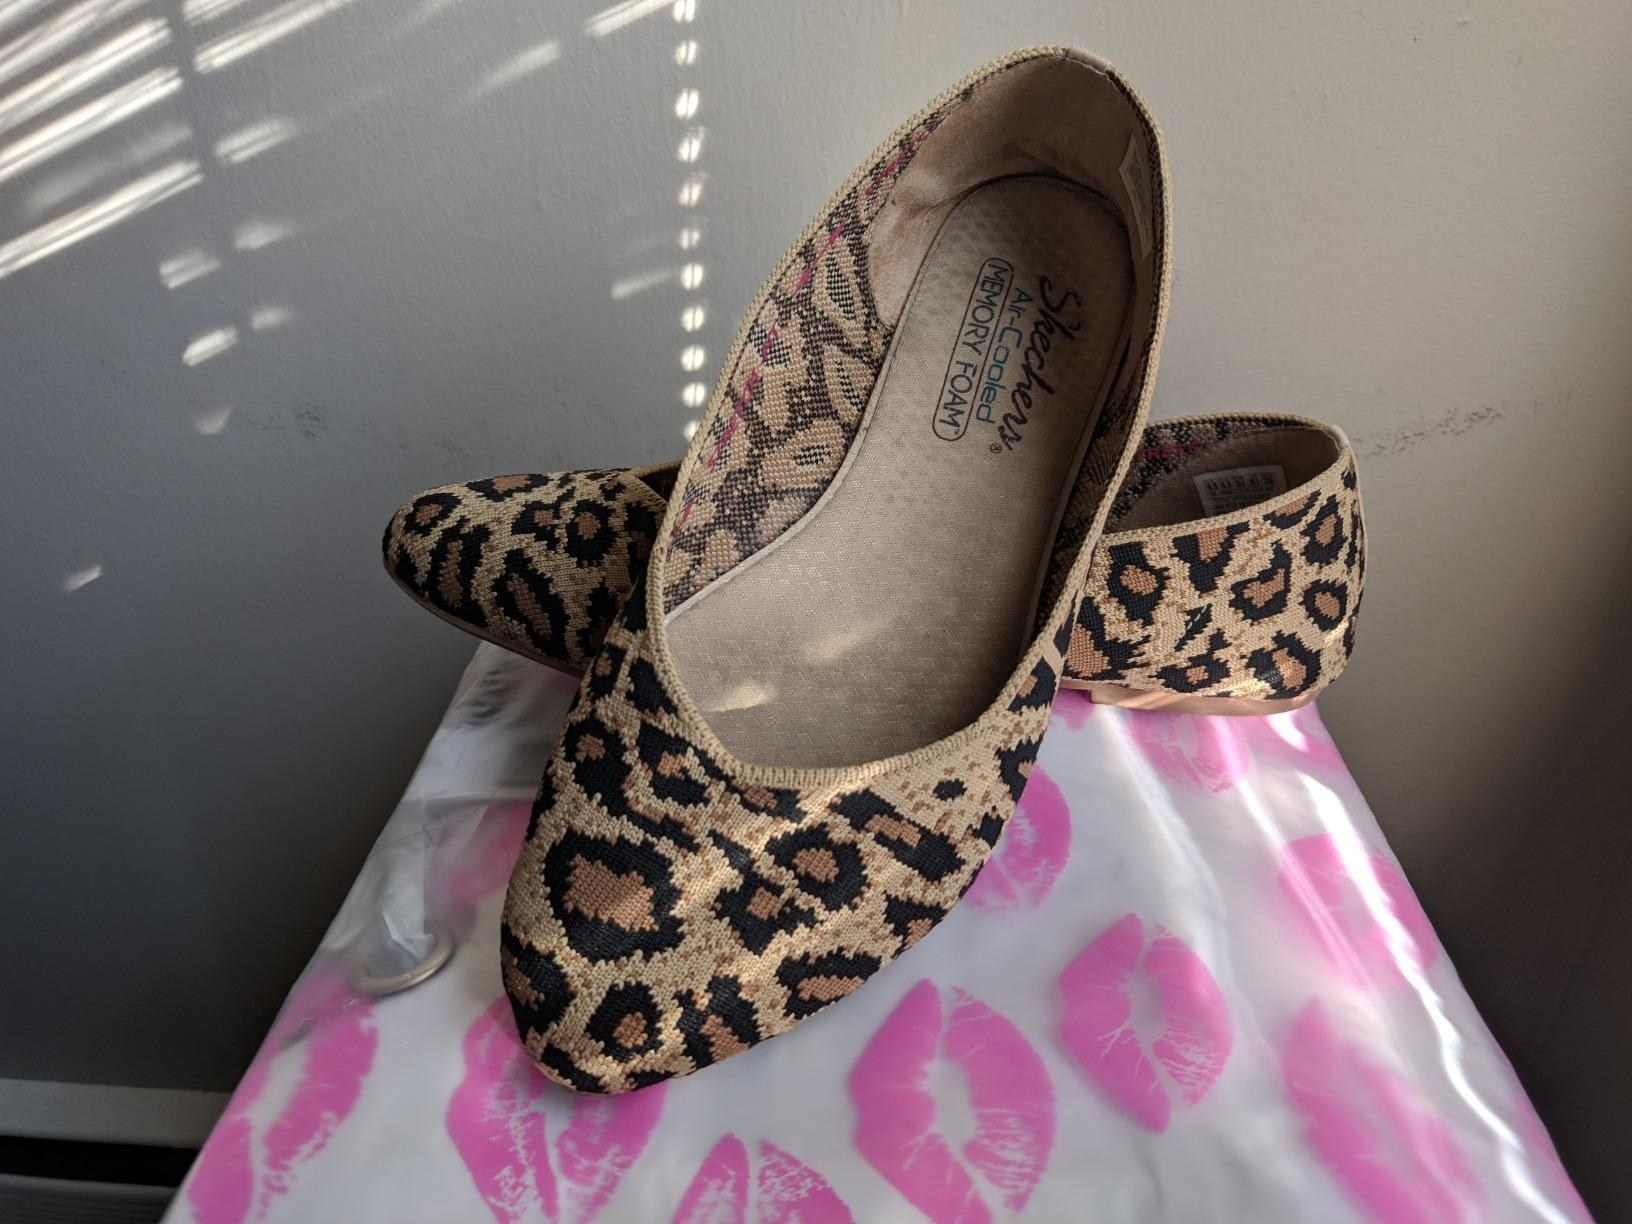 A reviewer image of the brown and black flats